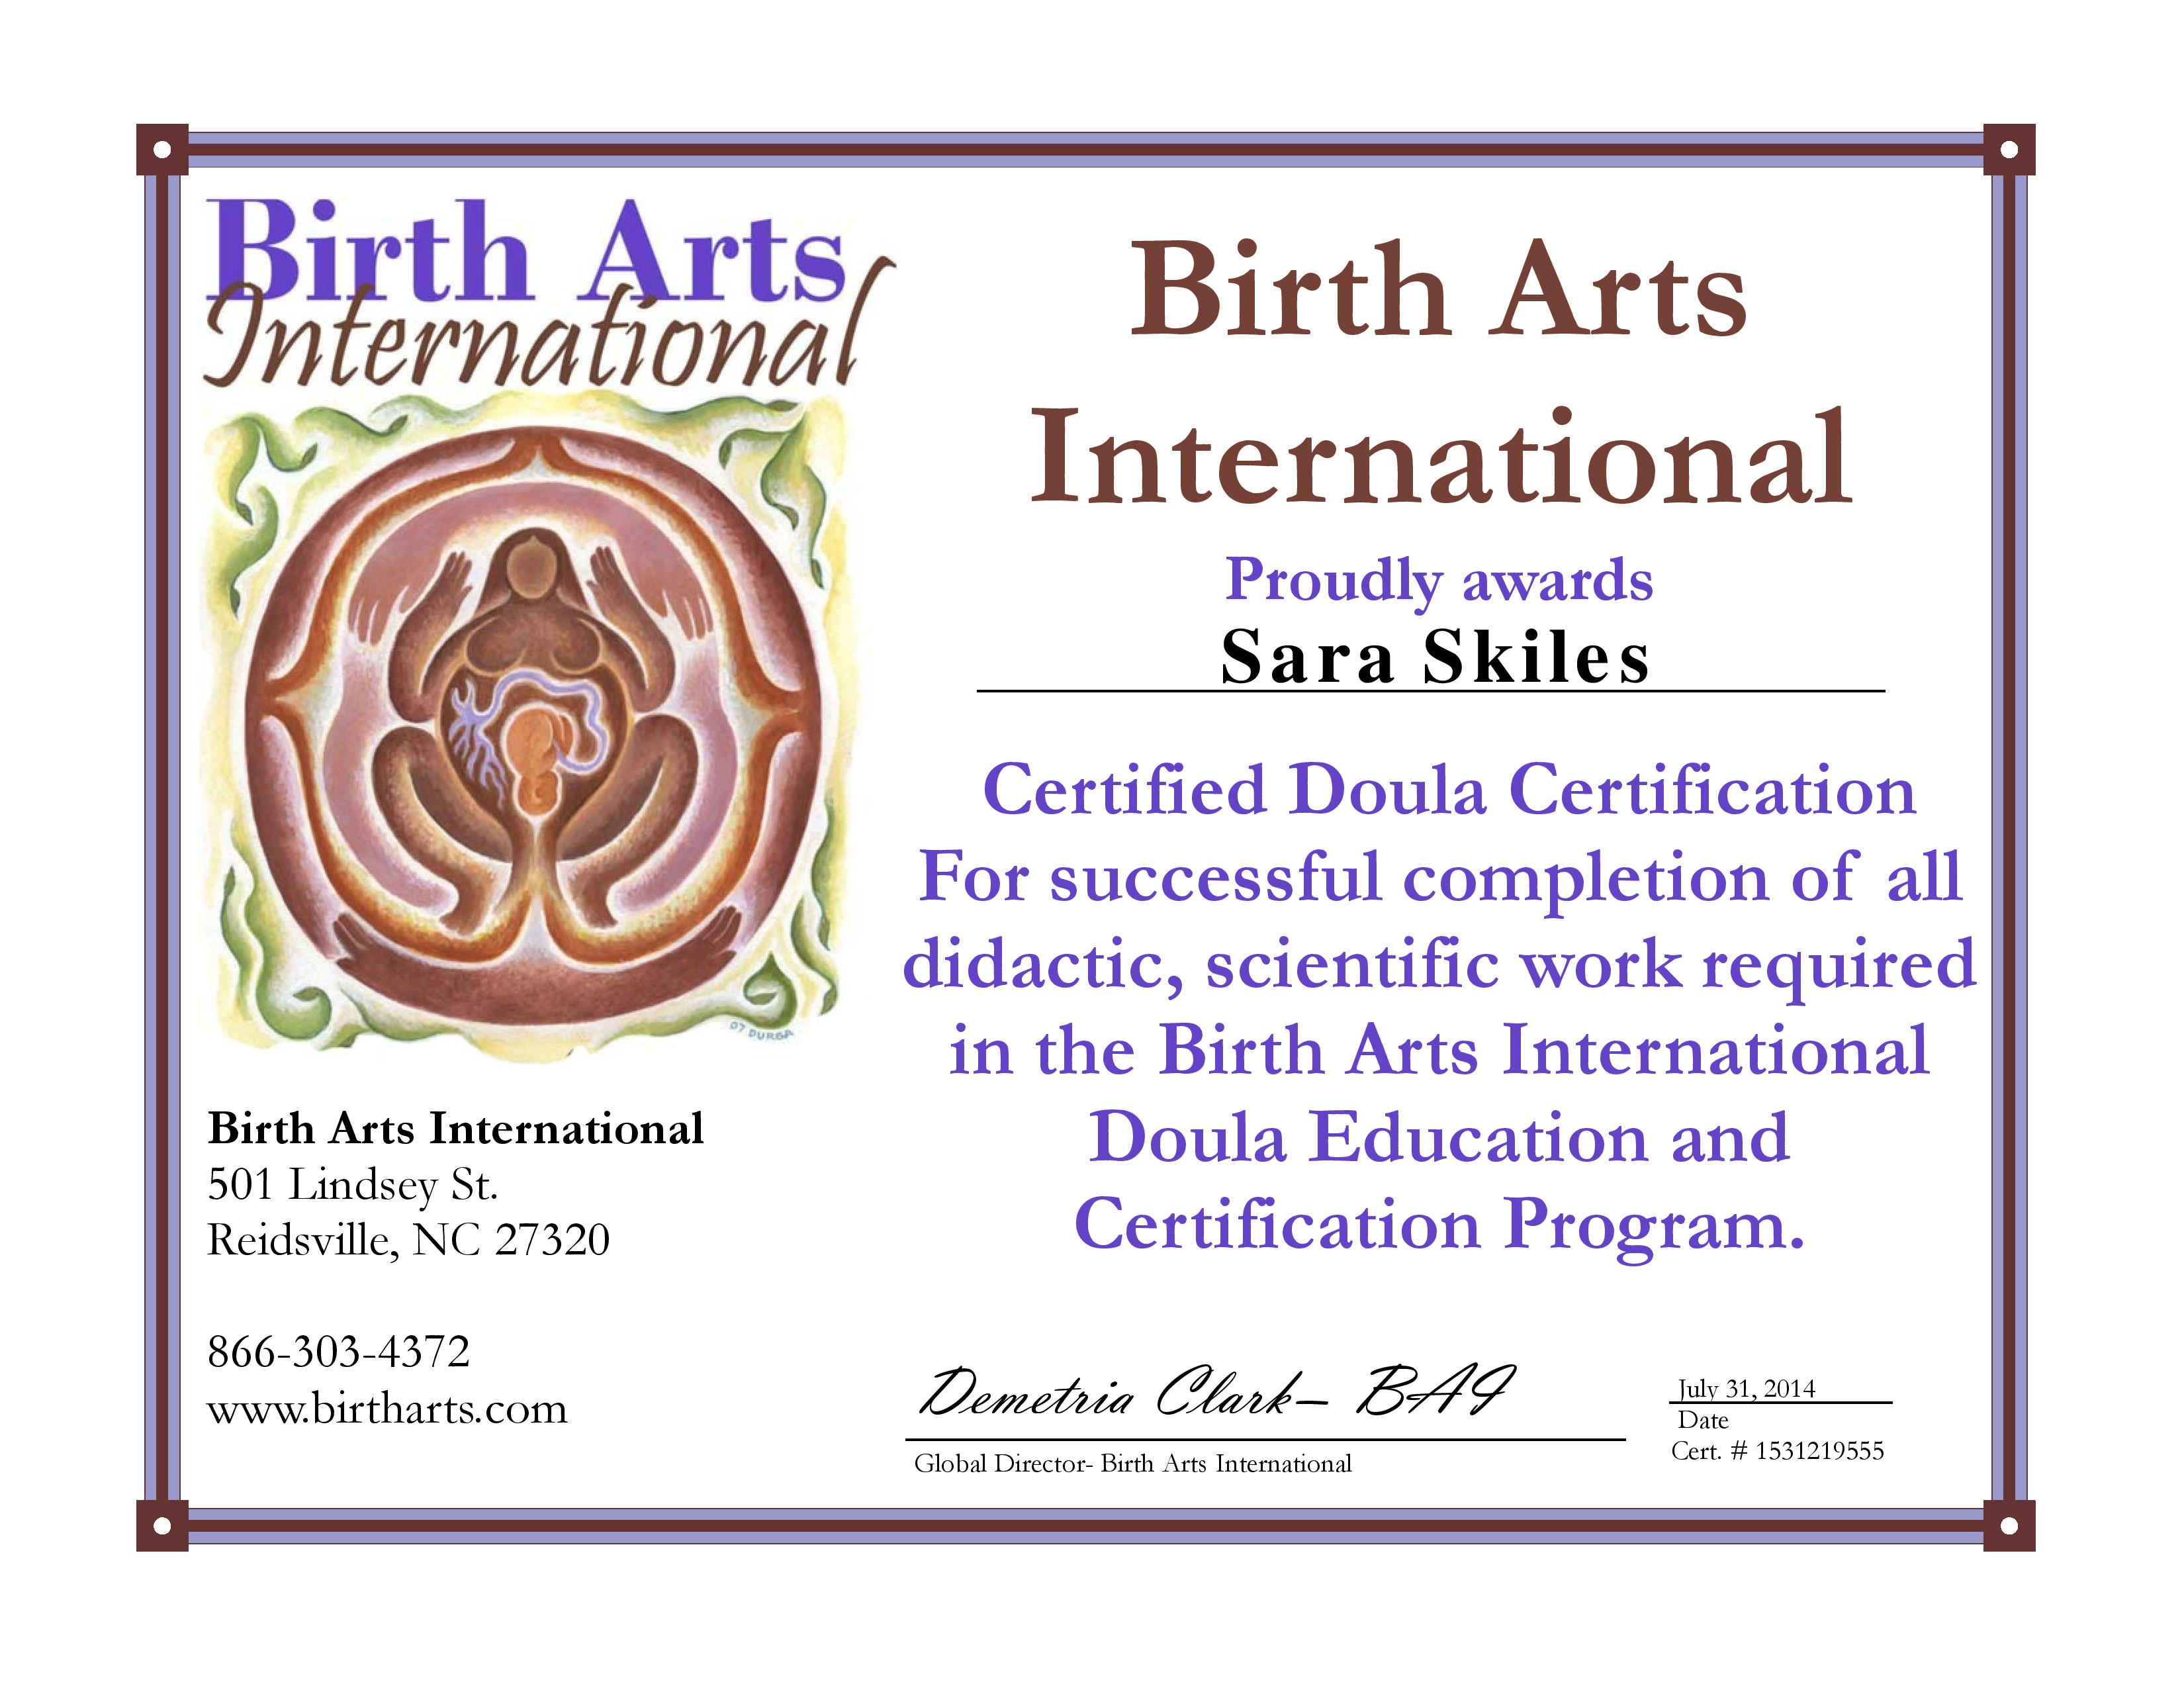 Discussion on this topic: How to Become a Certified Doula, how-to-become-a-certified-doula/